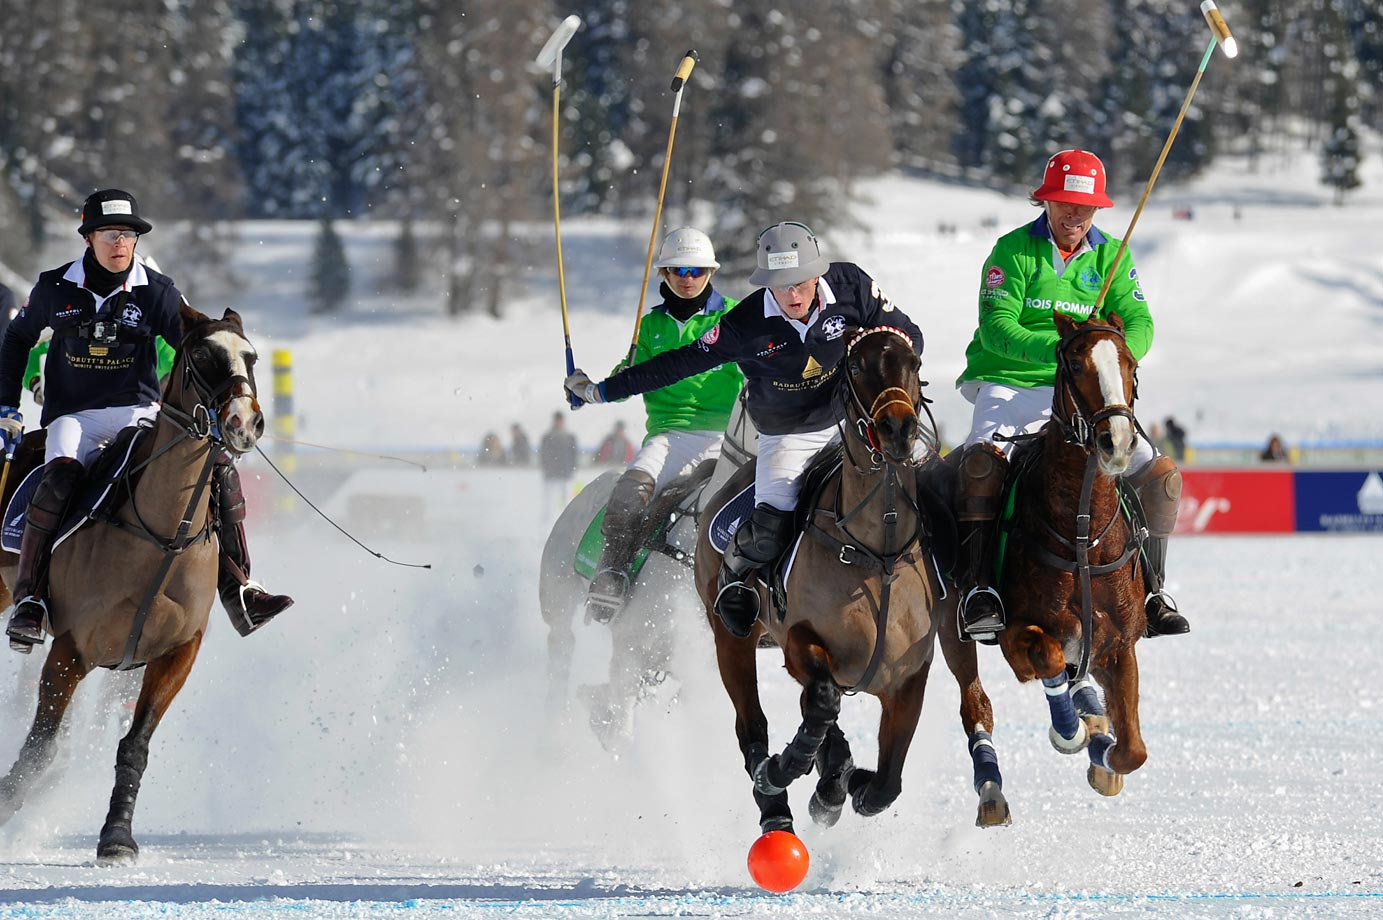 Action from the snow polo world cup, which took place in St. Moritz, Switzerland.